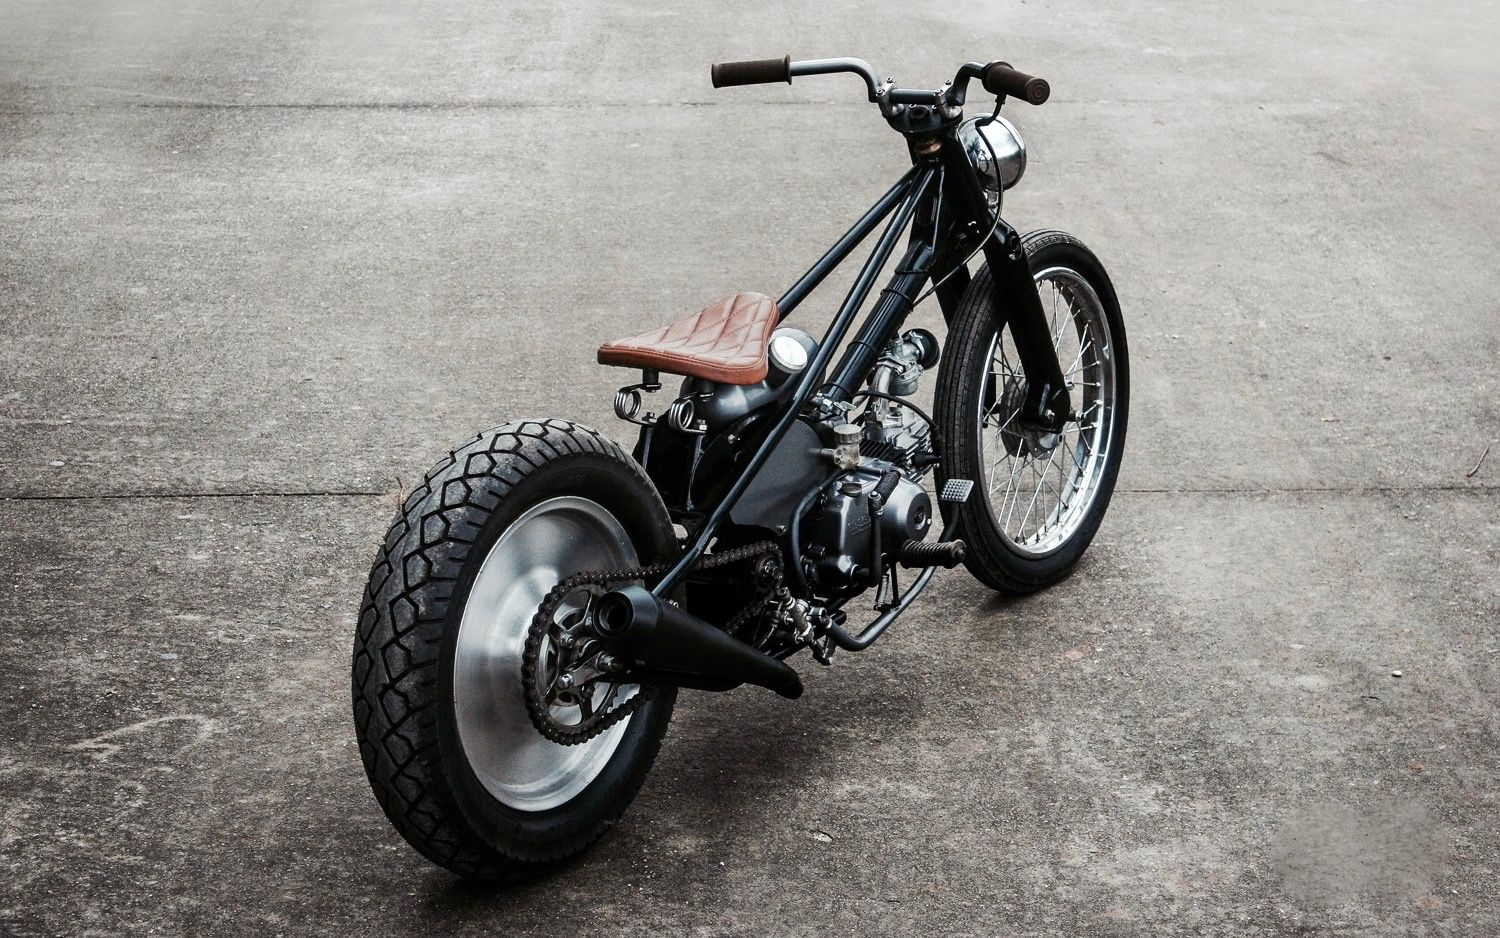 Cafe Racers Scramblers Street Trackers Vintage Bikes And Much More The Best Garage For Special Motorcycles And Vintage Cafe Racer Vintage Bikes Cafe Racer